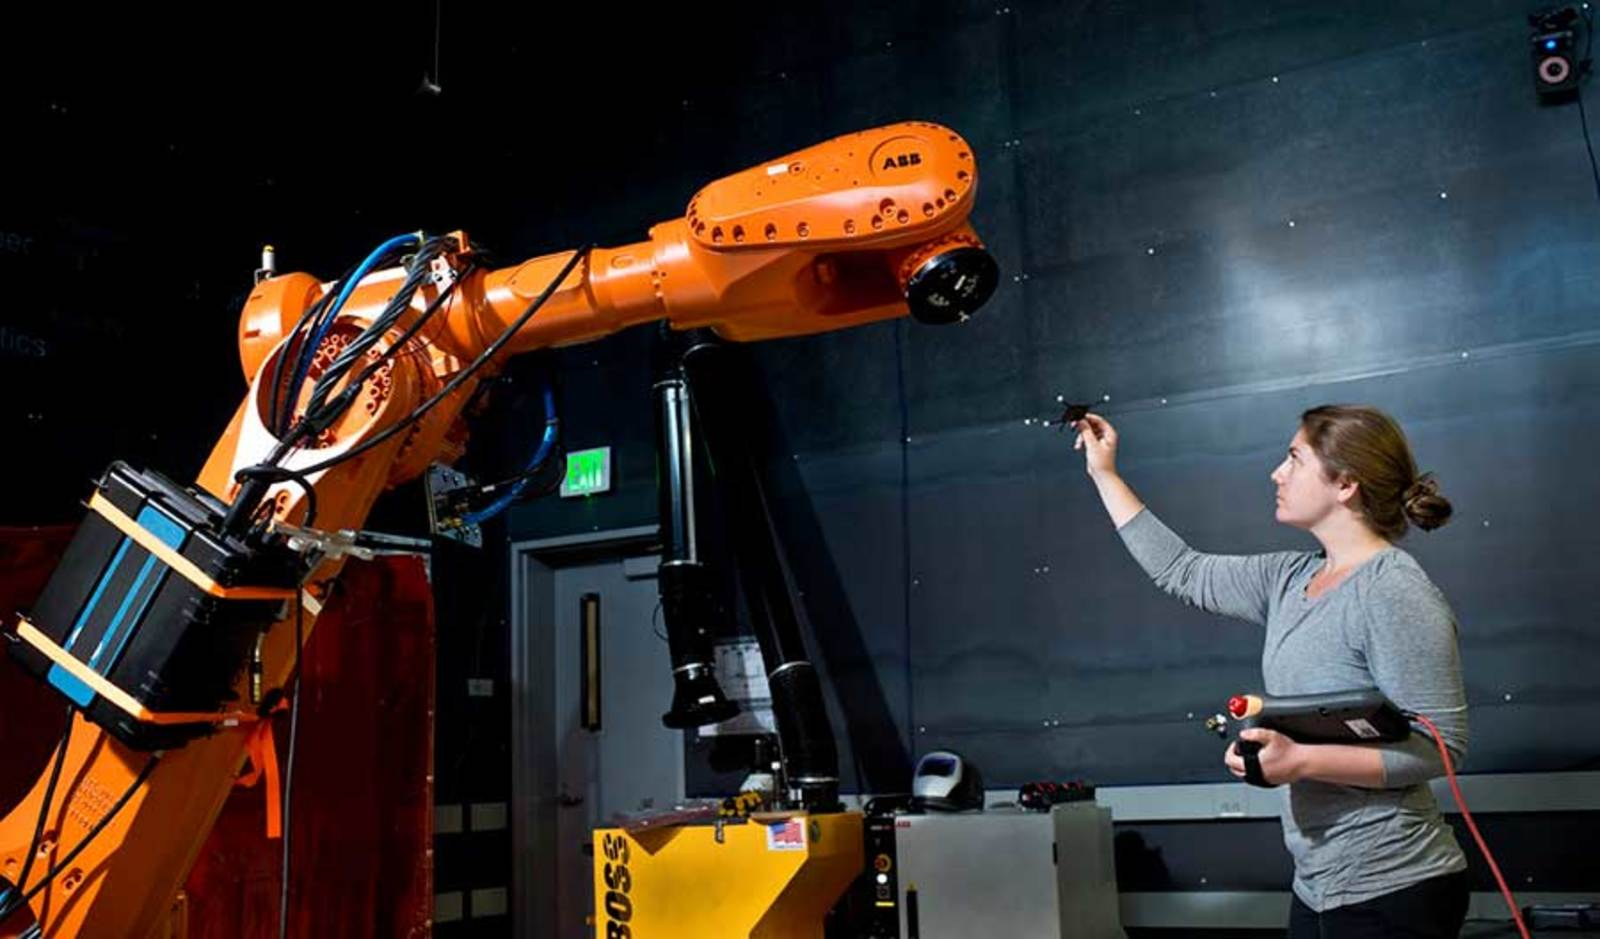 The Future of Humans and Machines: Human-Robot Interaction across